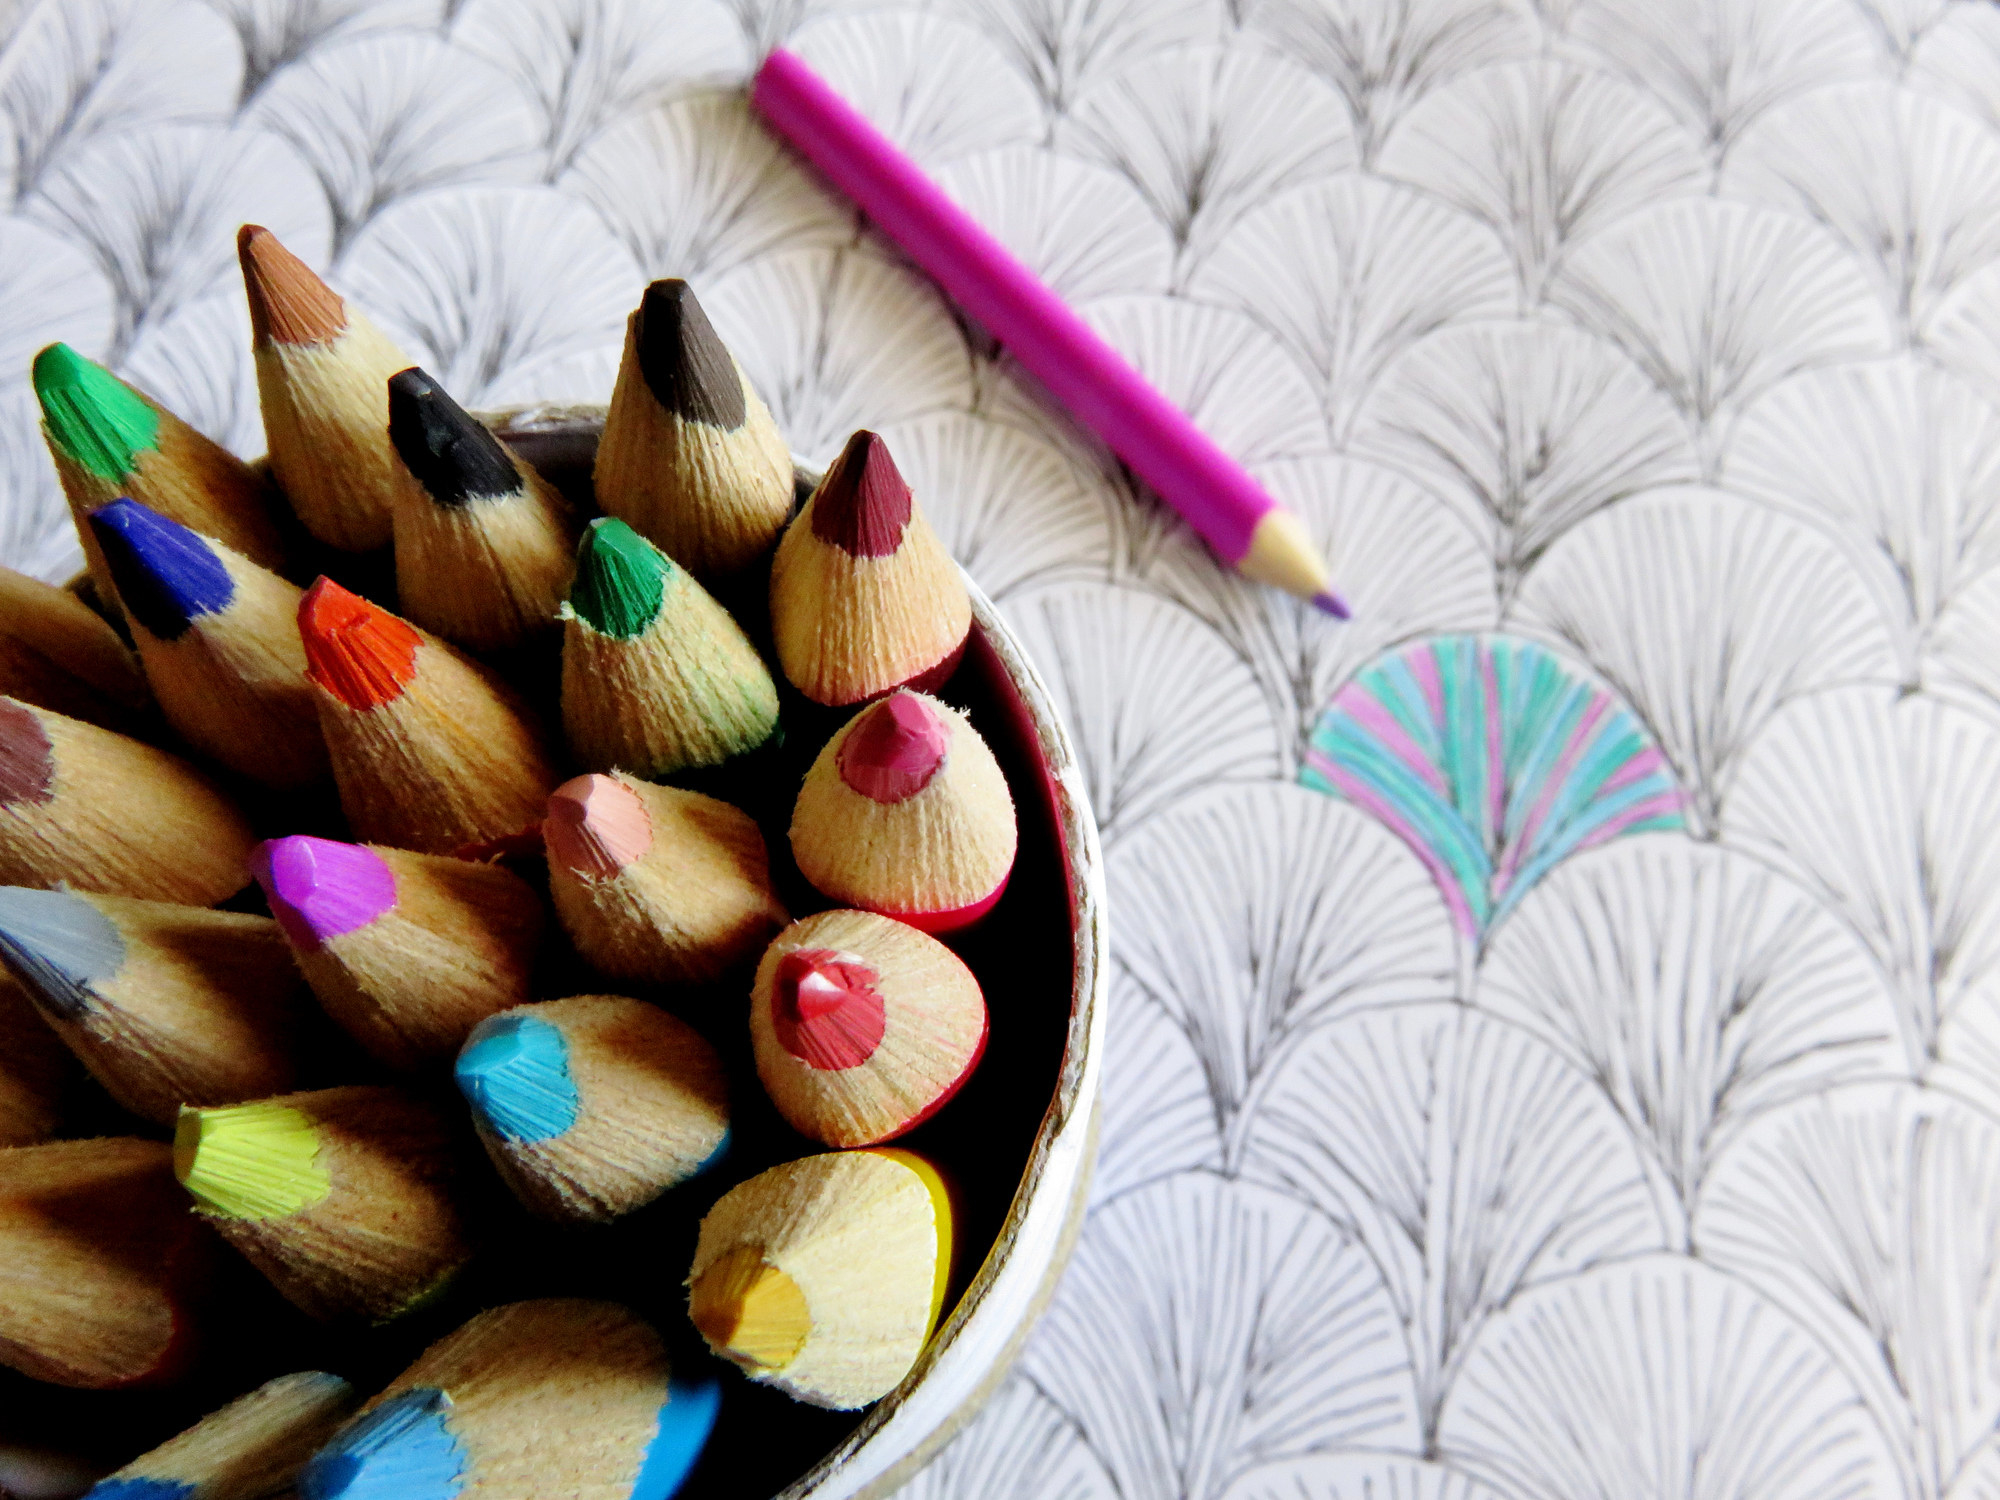 photo of coloring pencils in a can on the left corner while the can is on top of a table to draw on, in the middle is a pink pencil that has already colored in one portion of the table